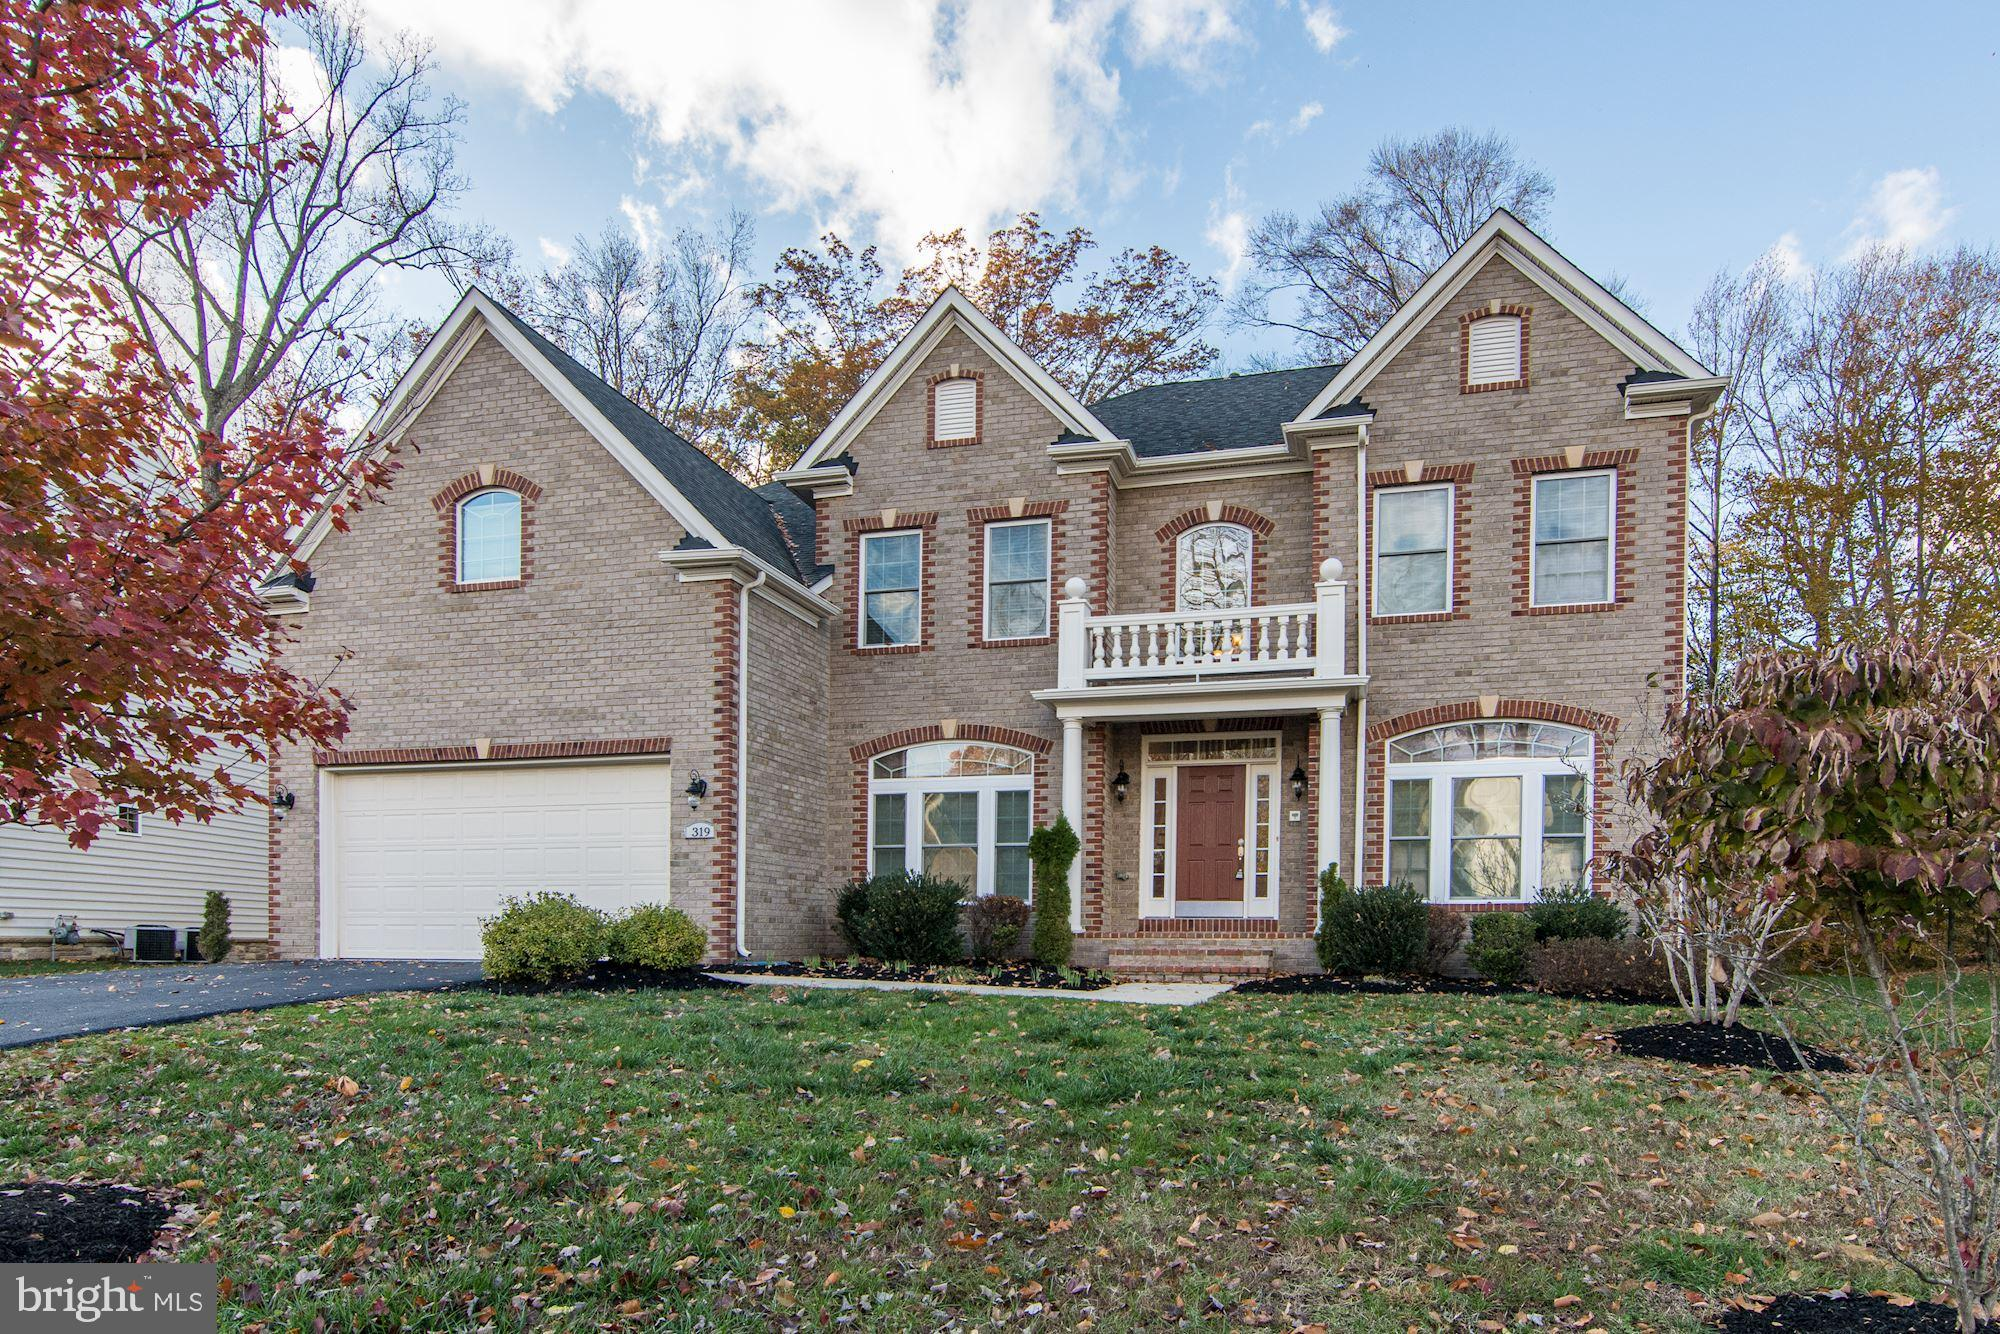 319 PANORA WAY, UPPER MARLBORO, MD 20774